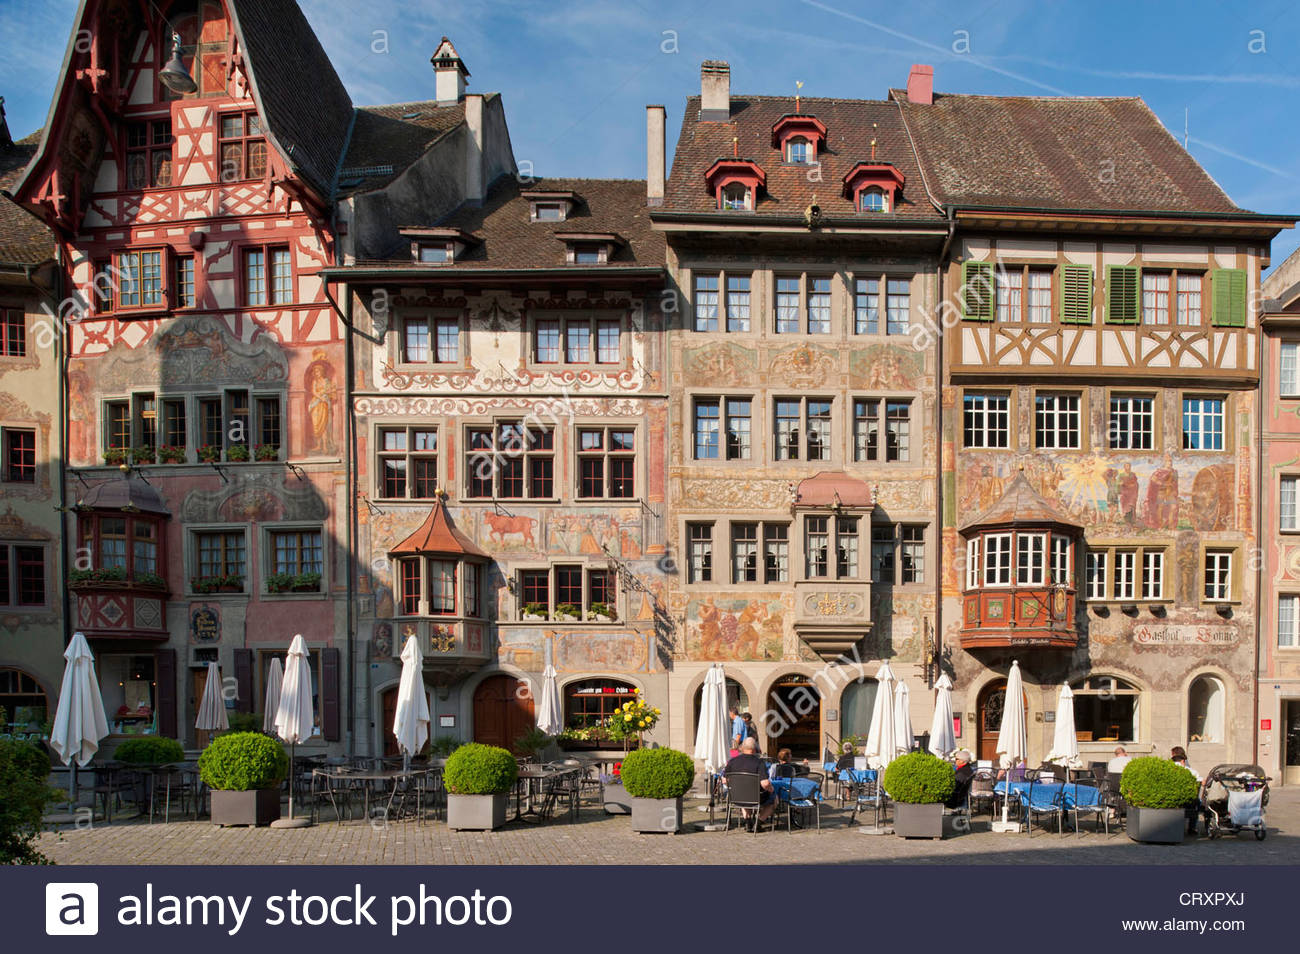 Switzerland, Stein am Rhein, People on pavement cafe and  historic houses - Stock Image